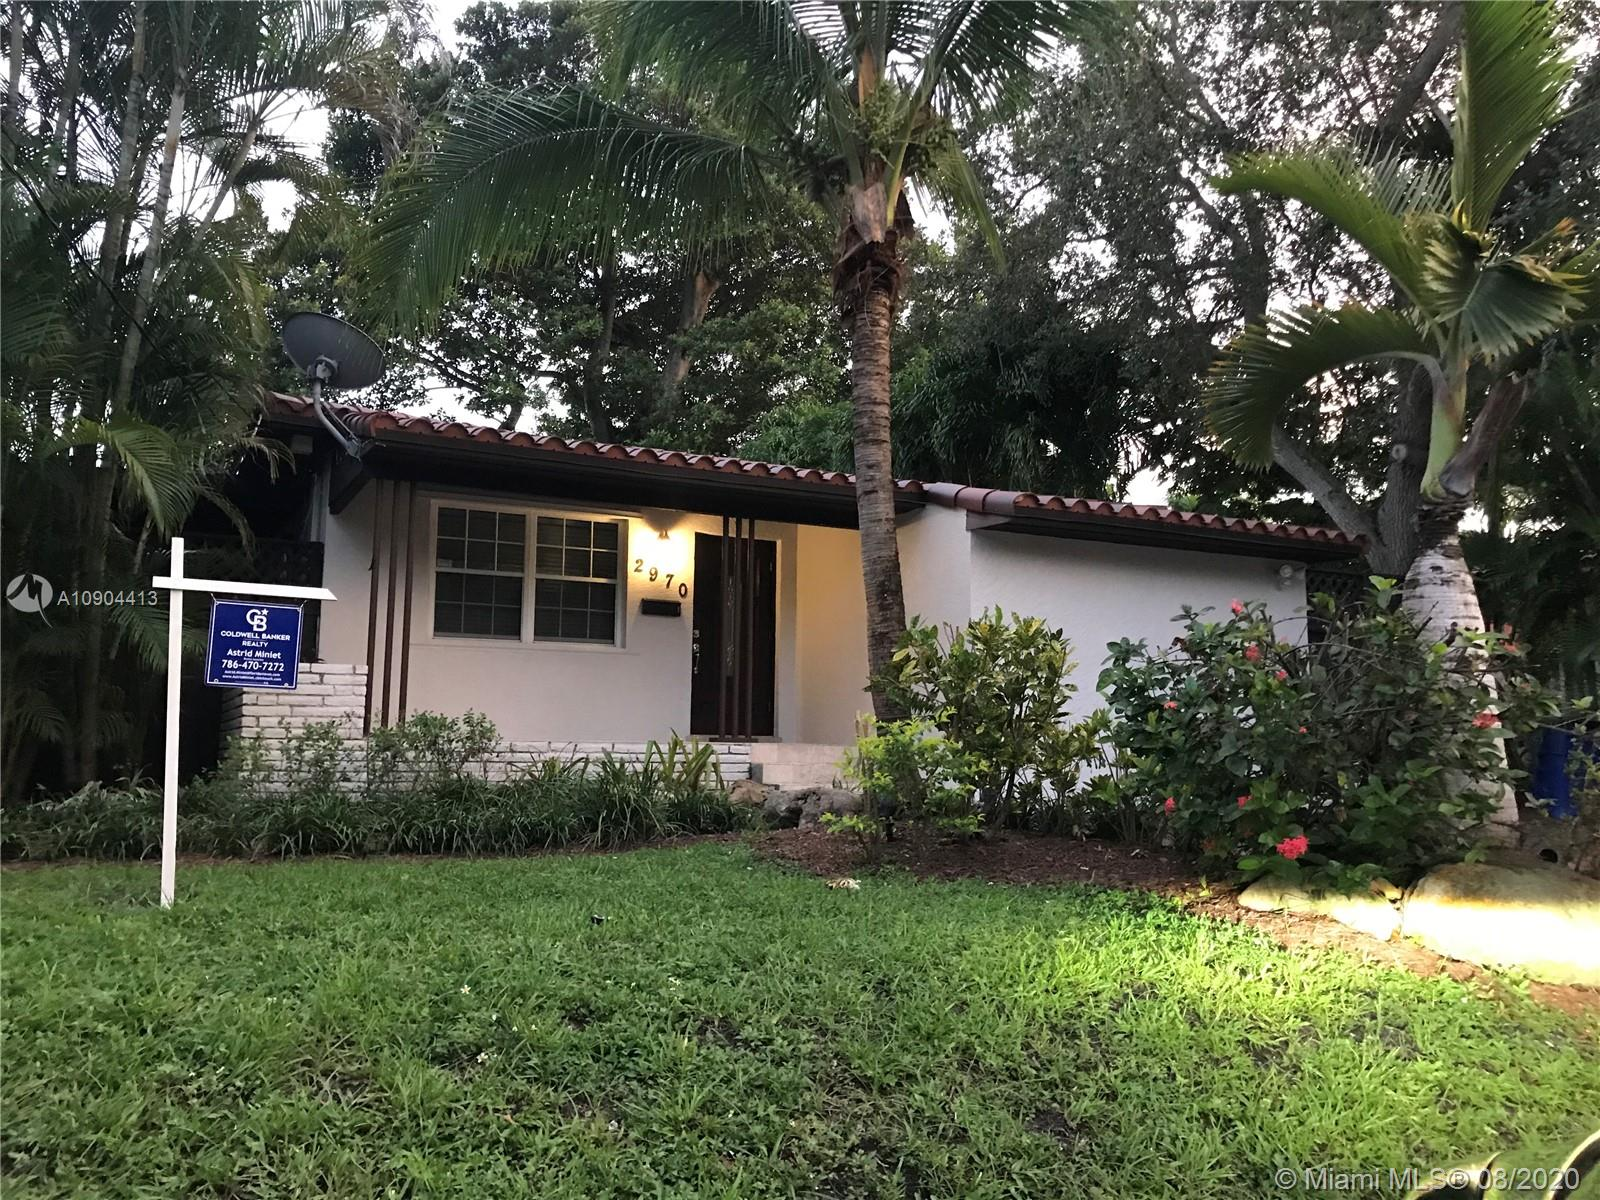 Best kept secret in Coconut Grove. This updated one-story single family home is under $700k and priced to sell.  Centrally located and within walking distance to a great dog park, Cocowalk, the bay, and many other hot spots in Coconut Grove. This single-family house has a fabulous deck for entertainment and BBQ.  This charming house was just painted inside and outside.  Call listing agent to schedule a showing.